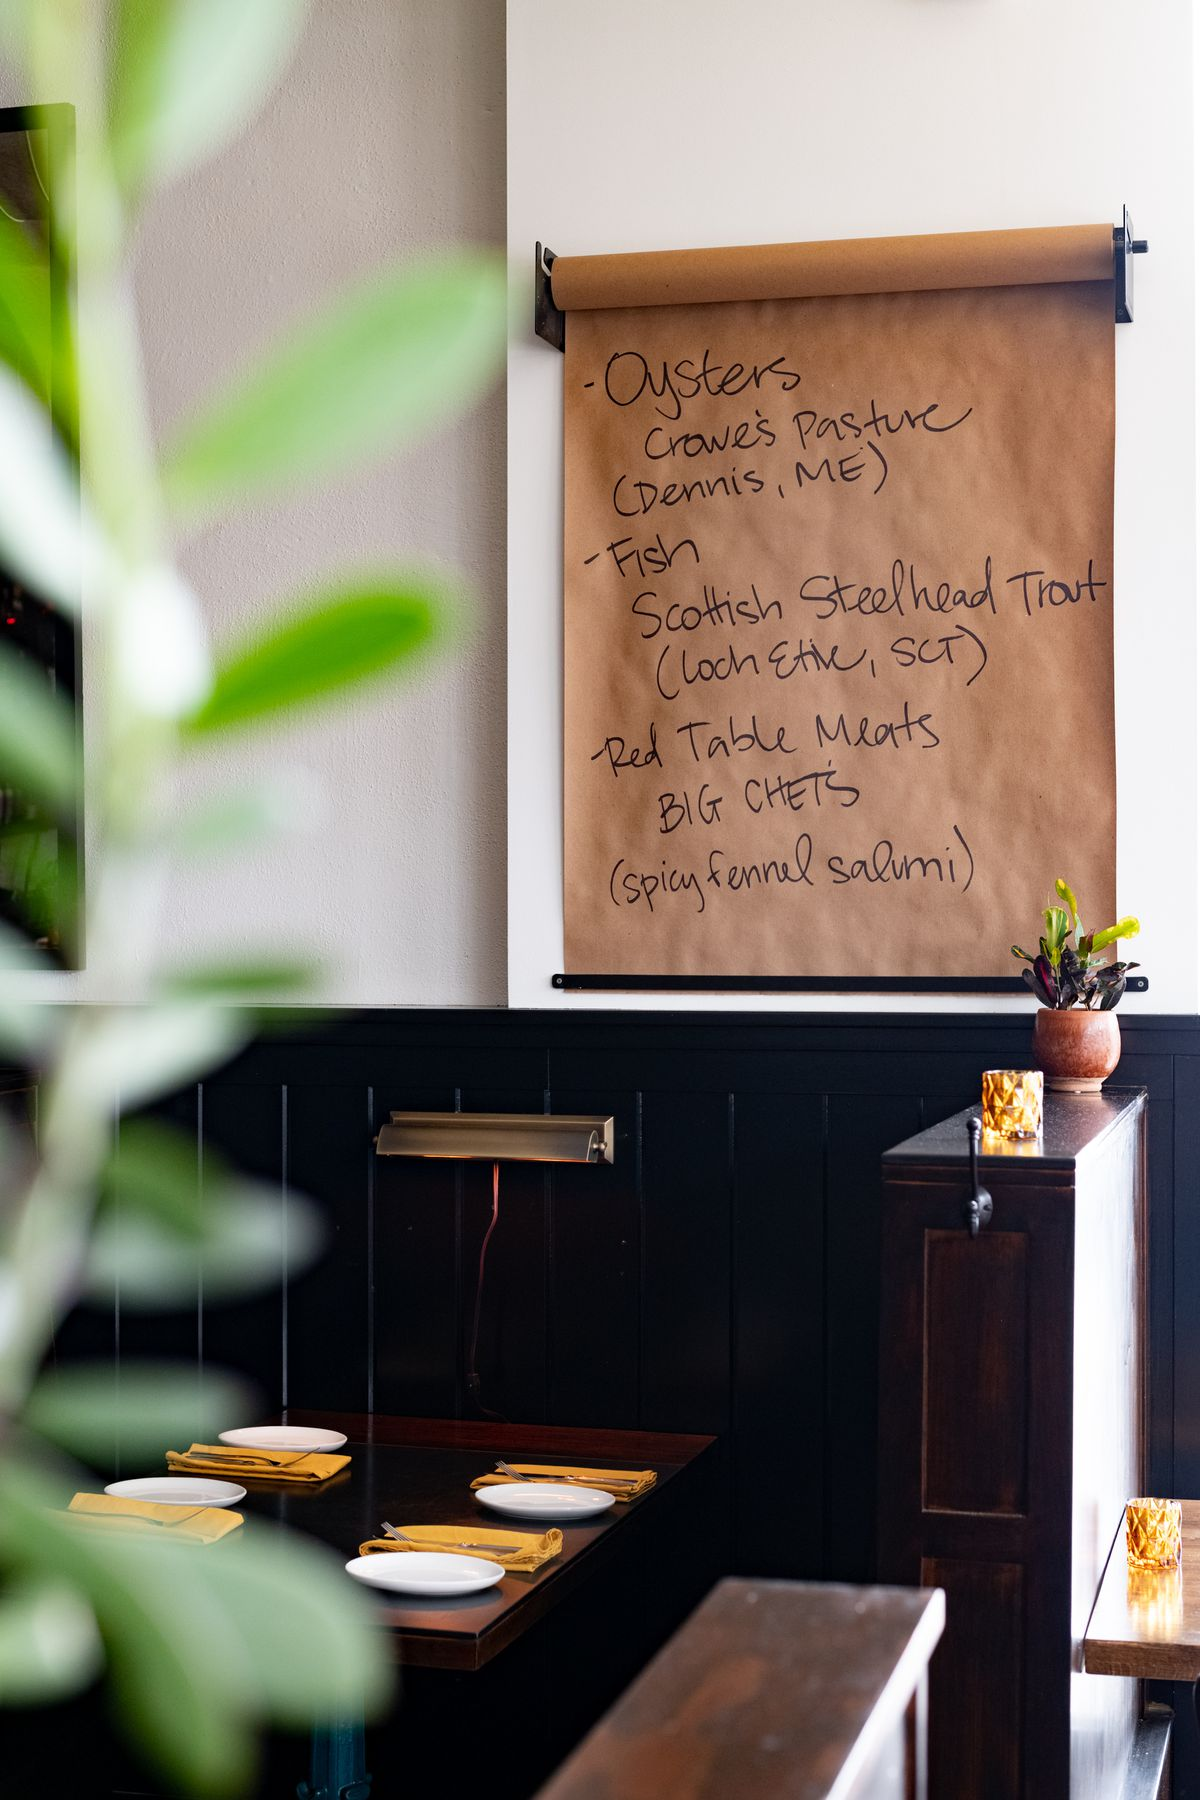 A dark brown wood booth set for four with bright, mustard-colored cloth napkins. Above it is a butcher paper specials listing the variety of mussels, fish, and salumi offered that day.